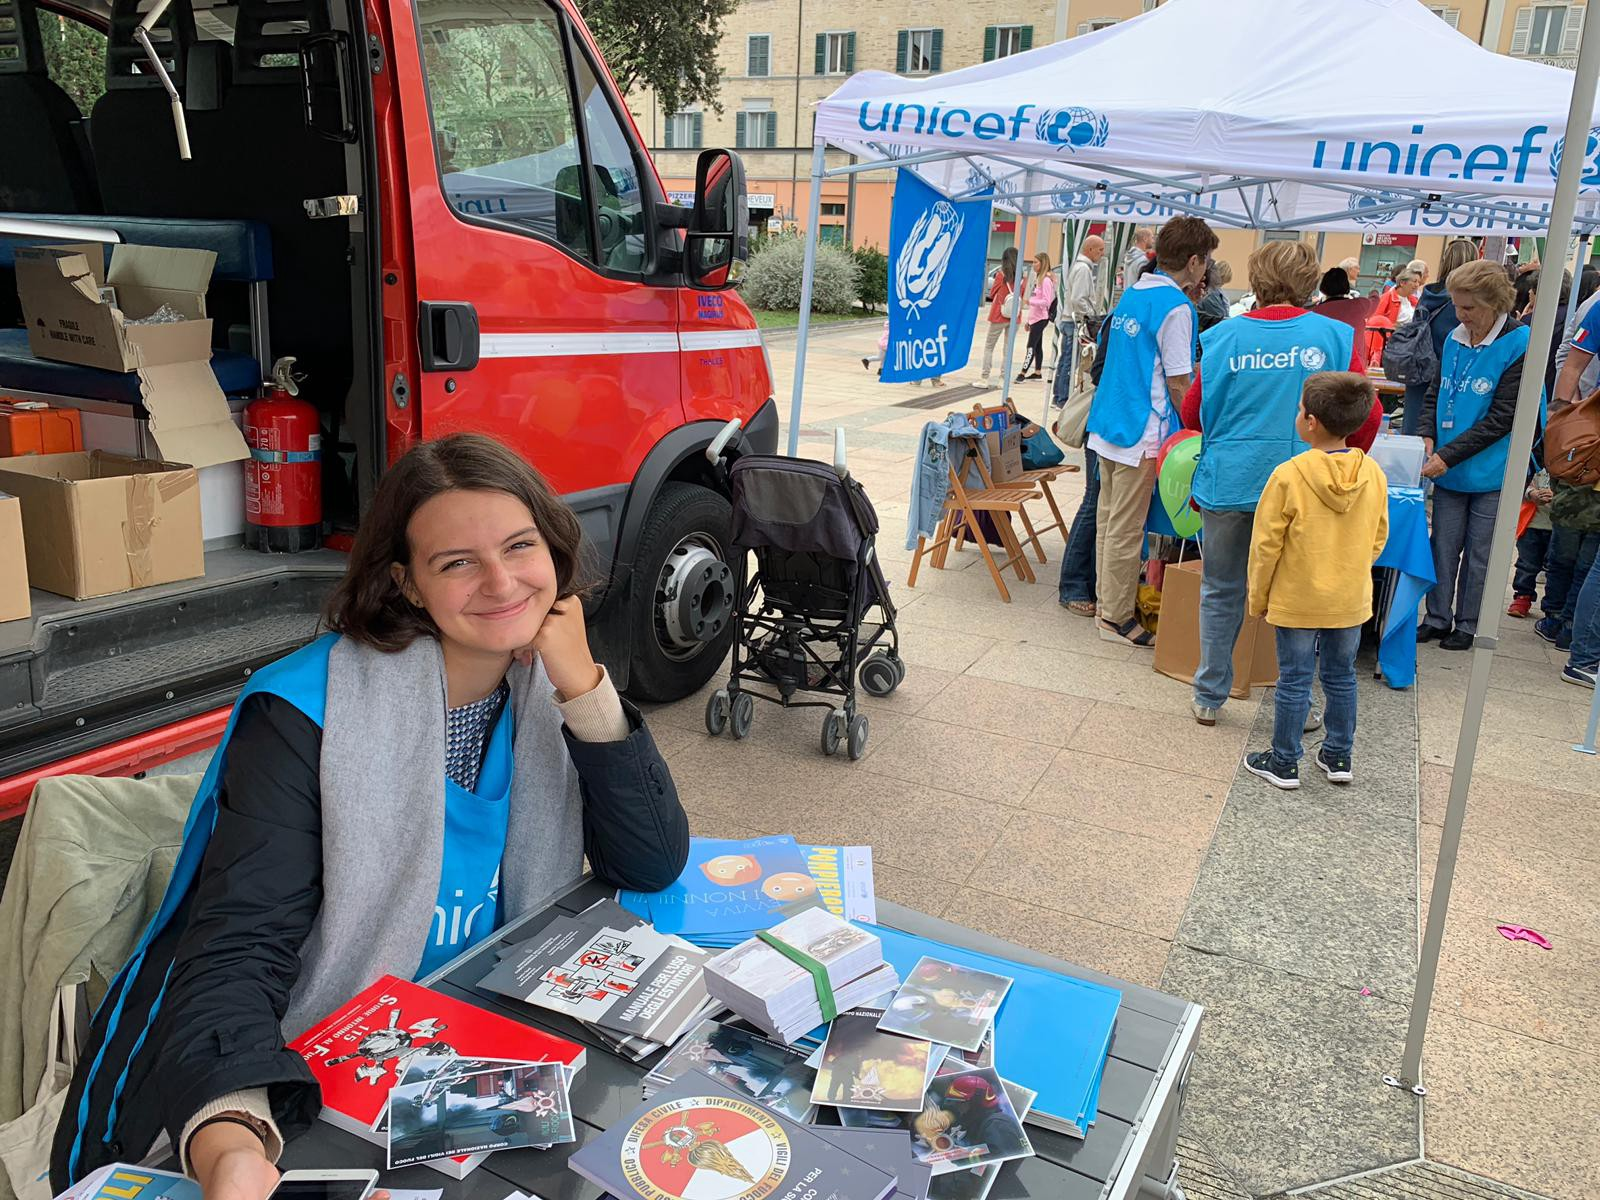 Virginia Maria Barchiesi hosting a fundraising table at a UNICEF event in Ancona, Italy.